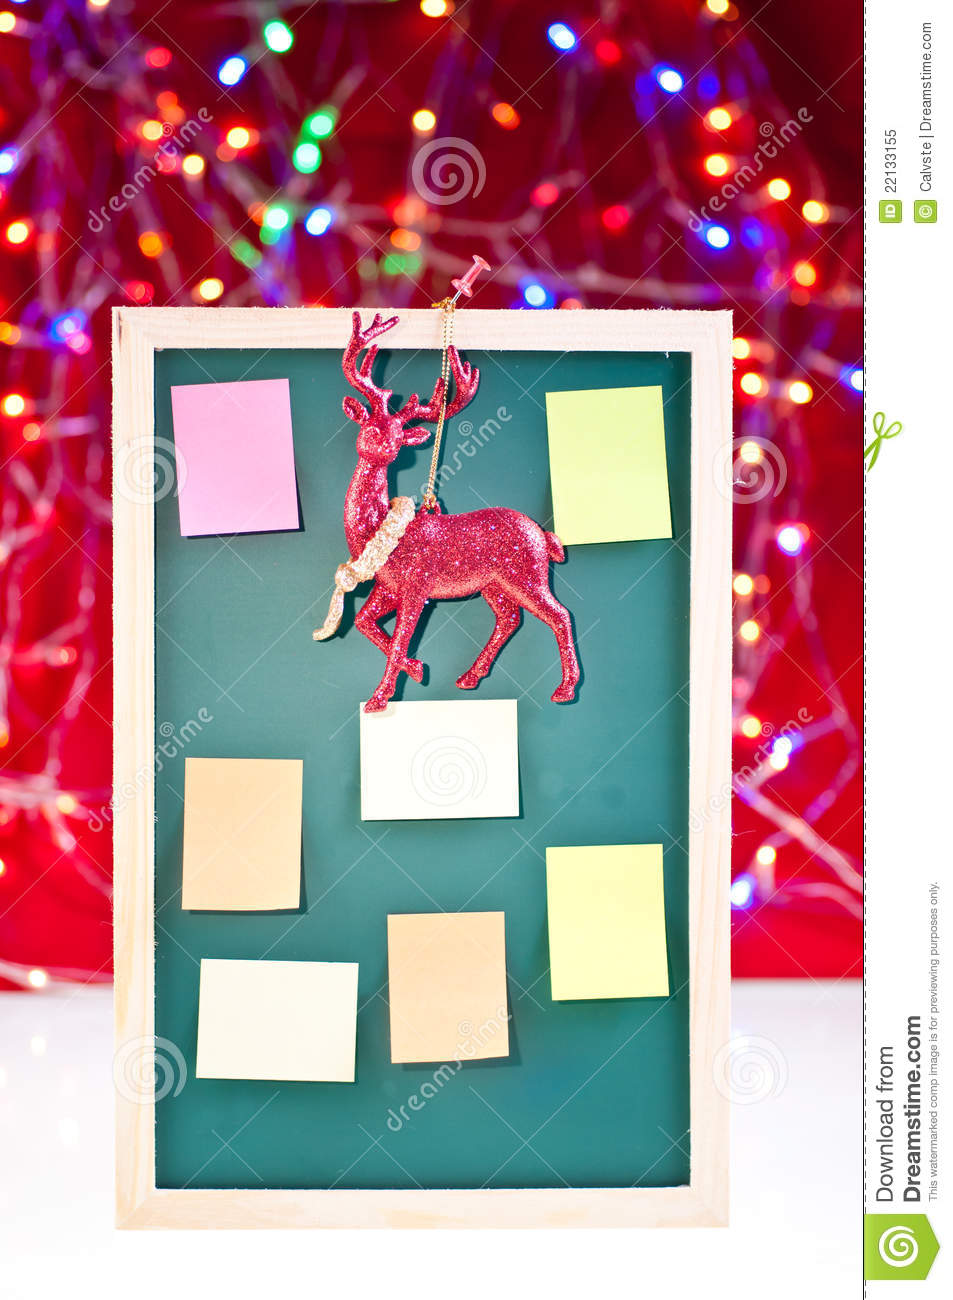 Christmas Decoration For Board : Christmas notice board with reindeer decoration royalty